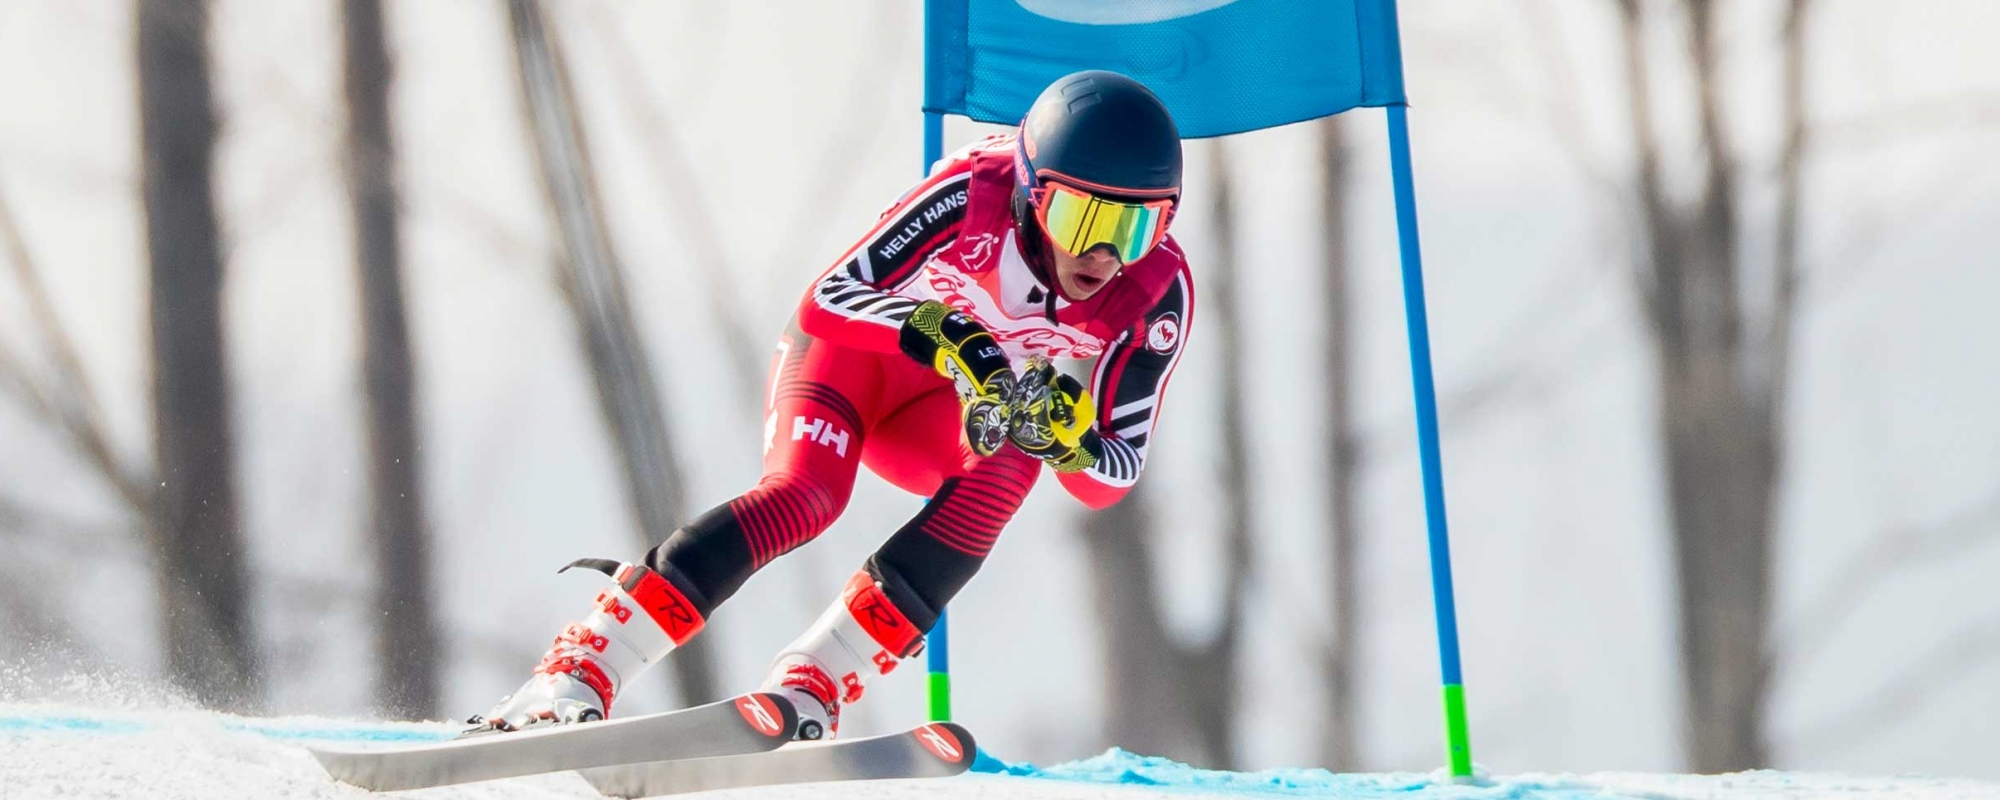 Alexis Guimond skiing downhill around a gate